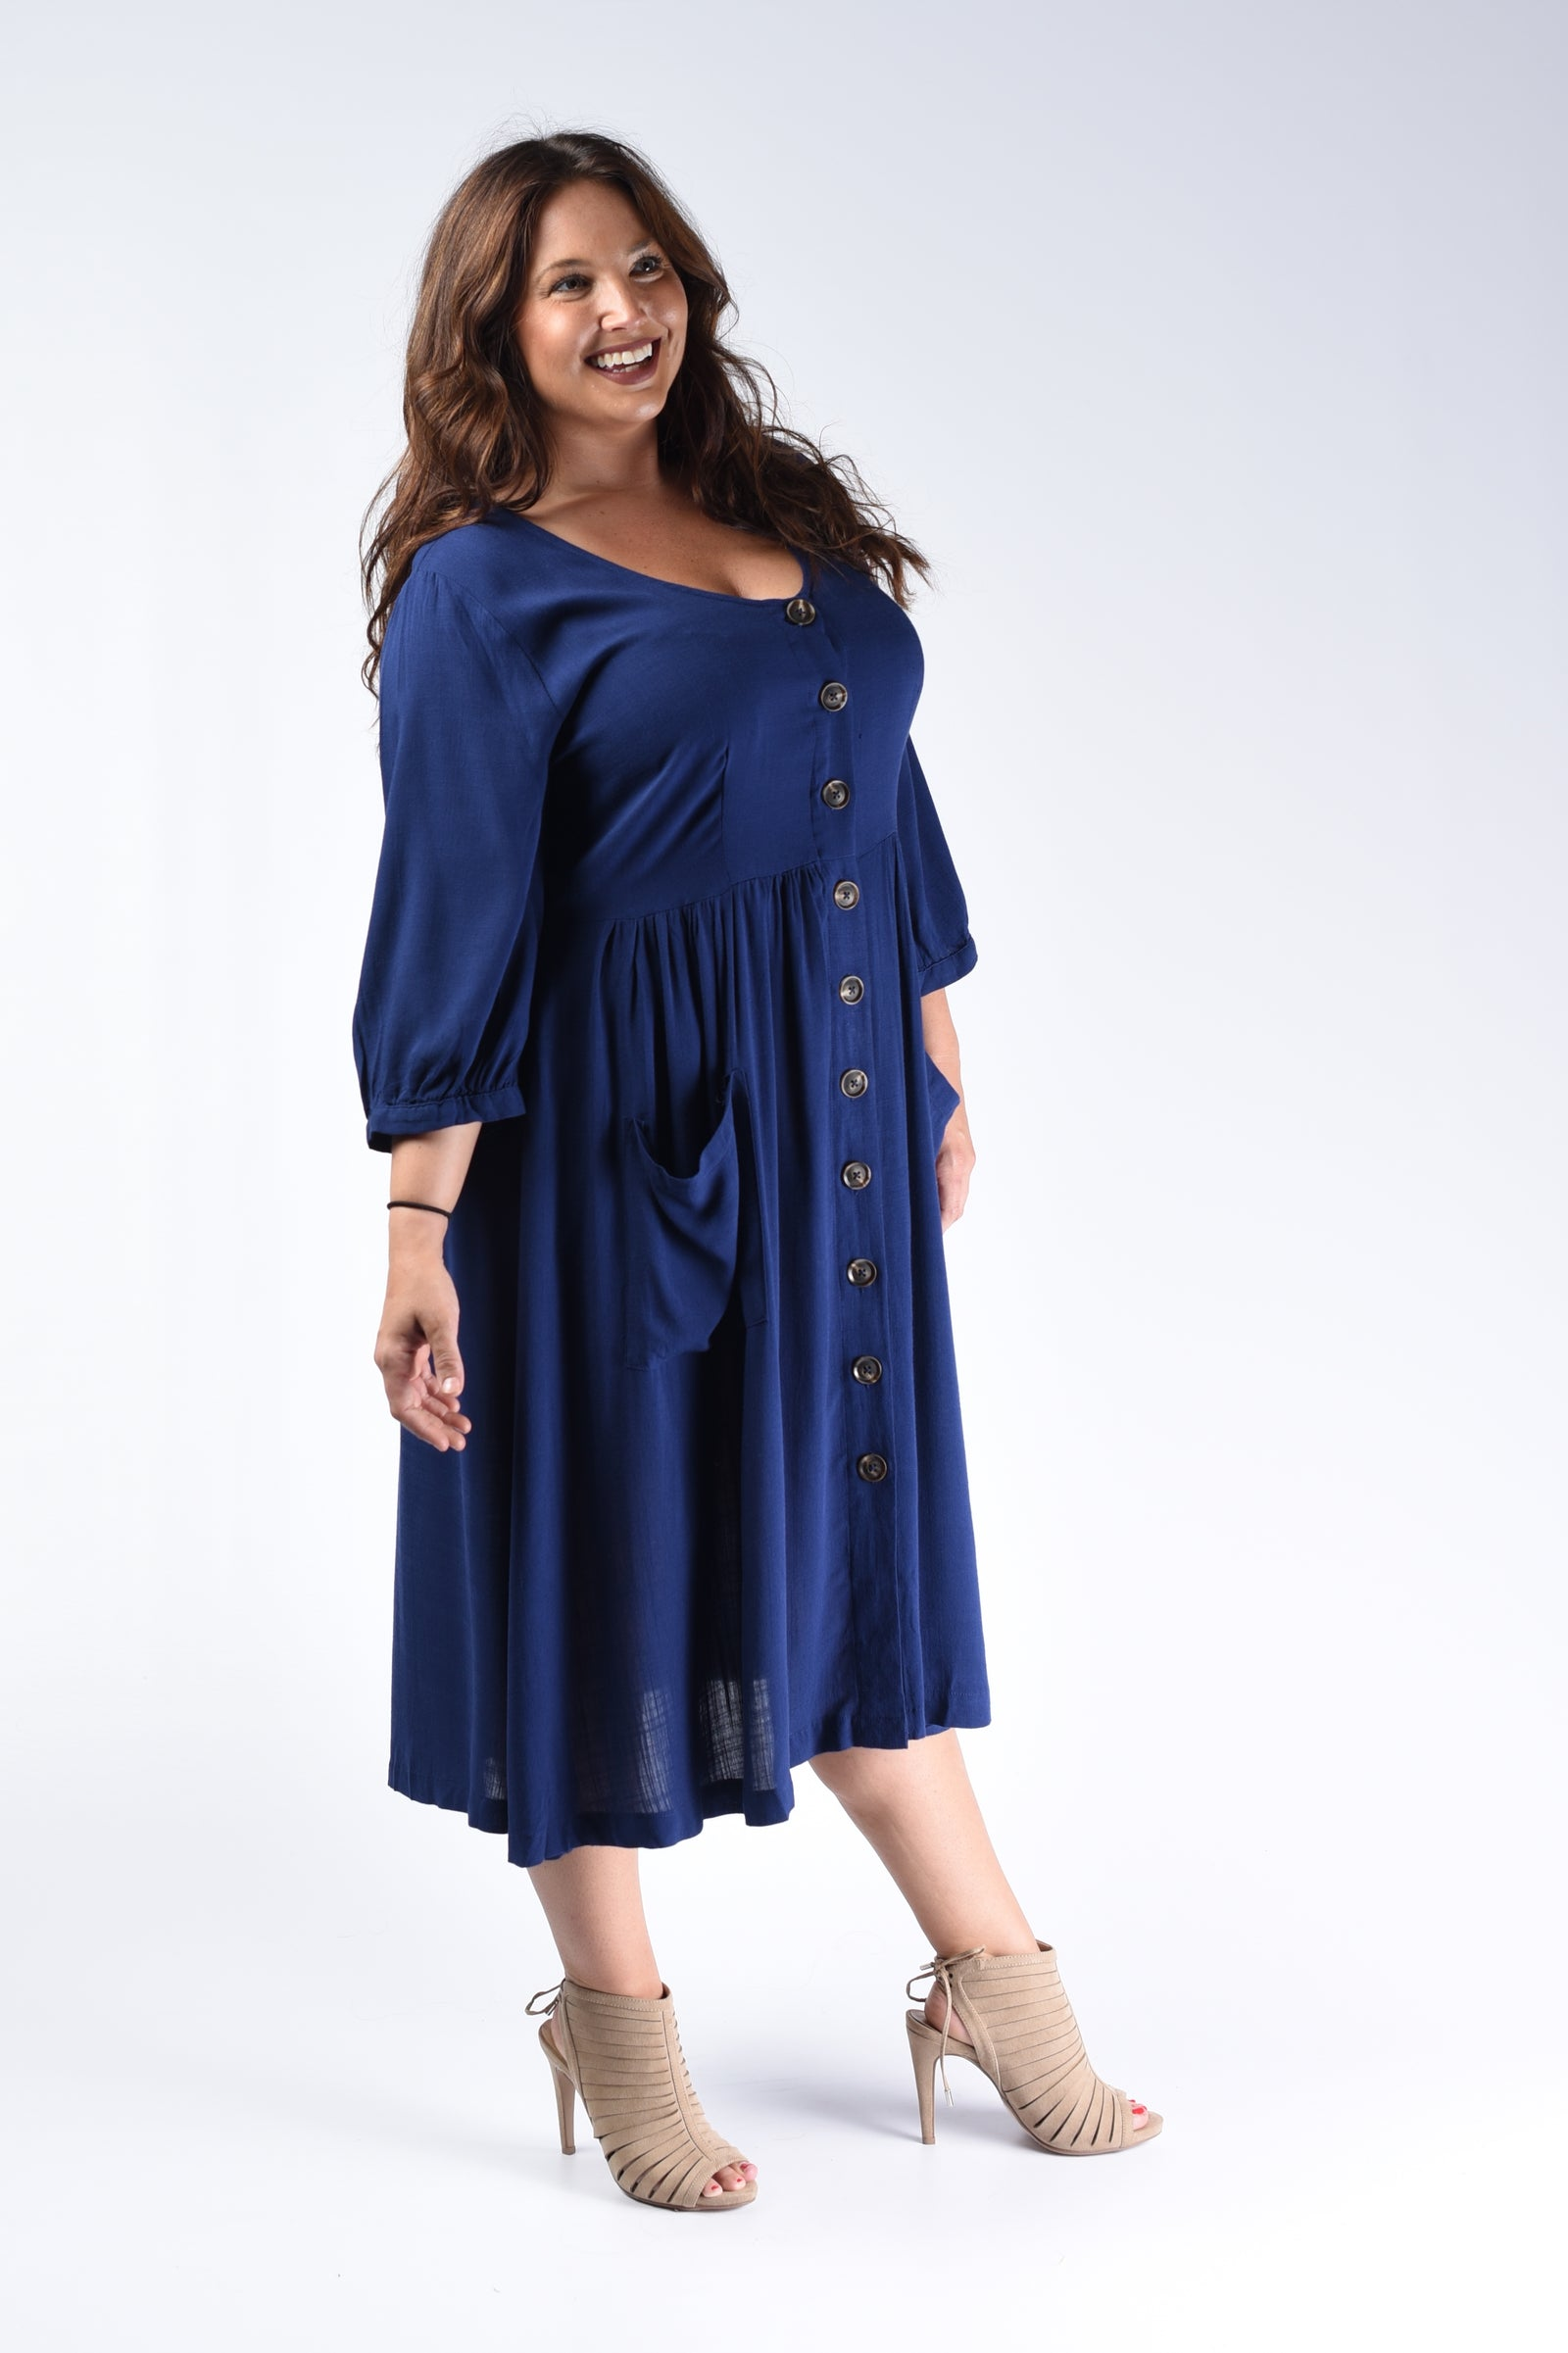 Navy Button Down Pocket Dress - www.mycurvystore.com - Curvy Boutique - Plus Size